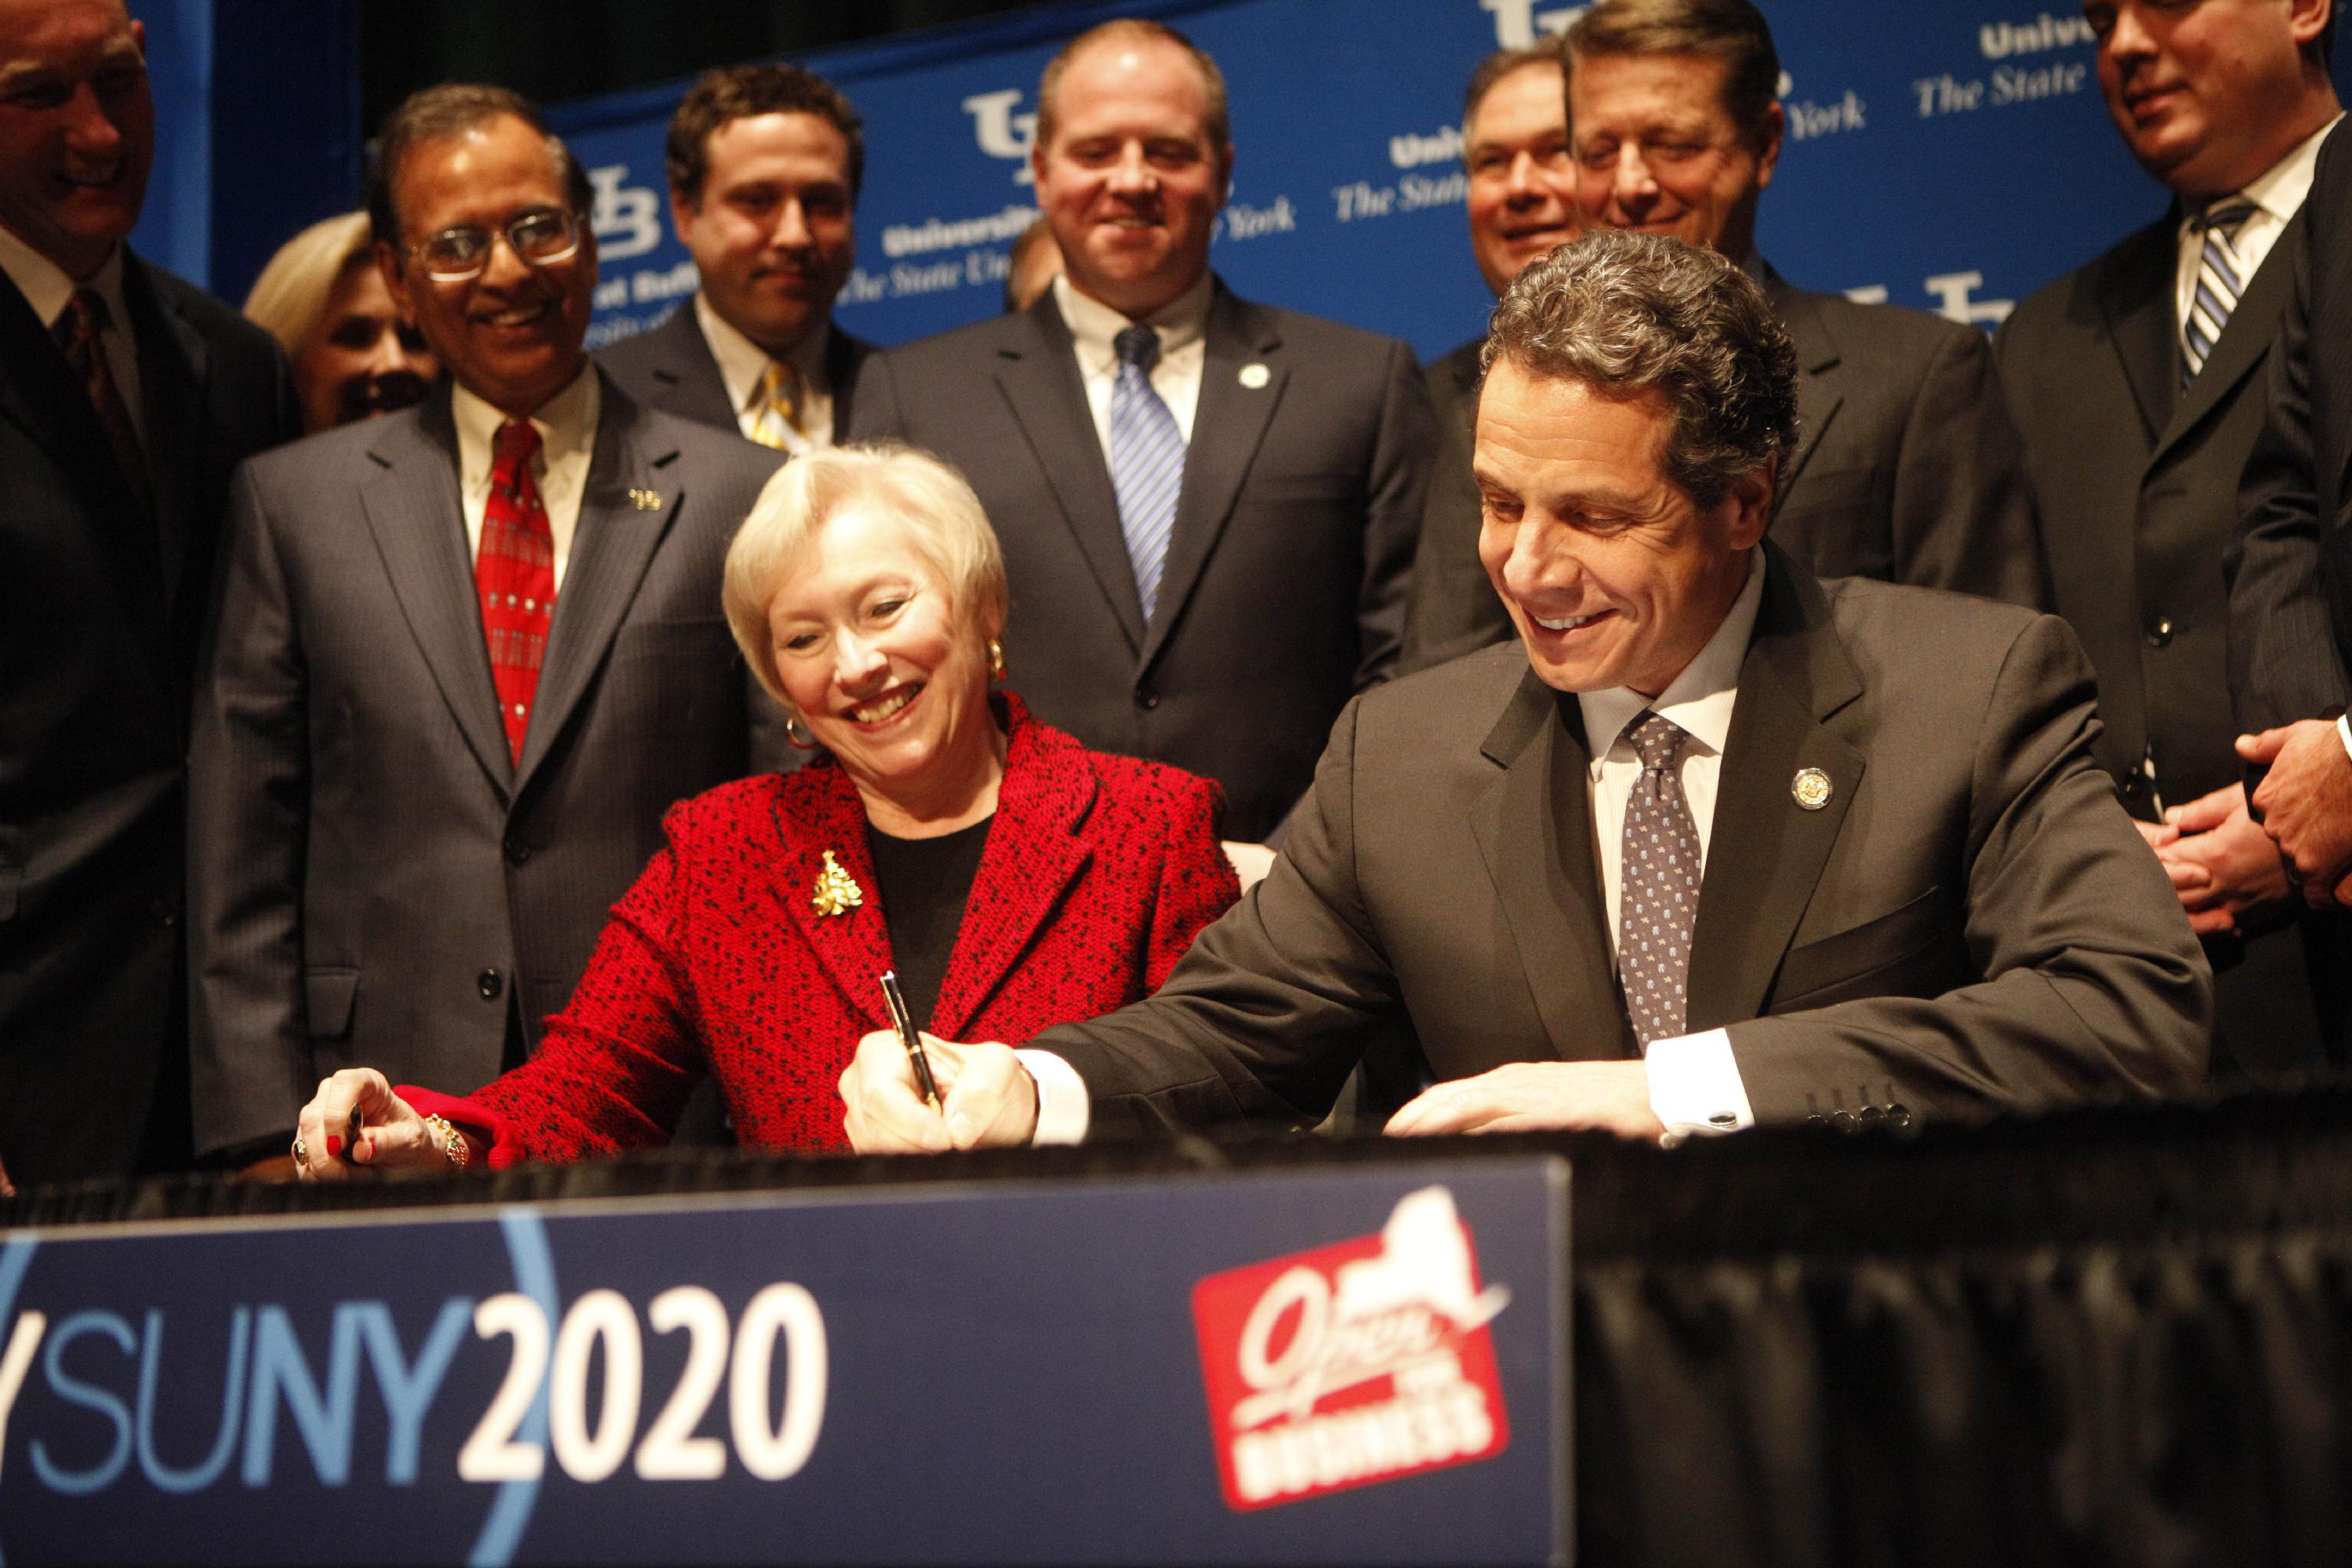 Surrounded by members of the Western New York delegation and UB President Satish Tripathi, left, New York Gov. Andrew Cuomo signs the NYSUNY2020 legislation during an event at the UB Center for the Arts, Tuesday, Dec. 13, 2011. Seated at the table with him is SUNY Chancellor Nancy Zimpher. (Derek Gee/Buffalo News)